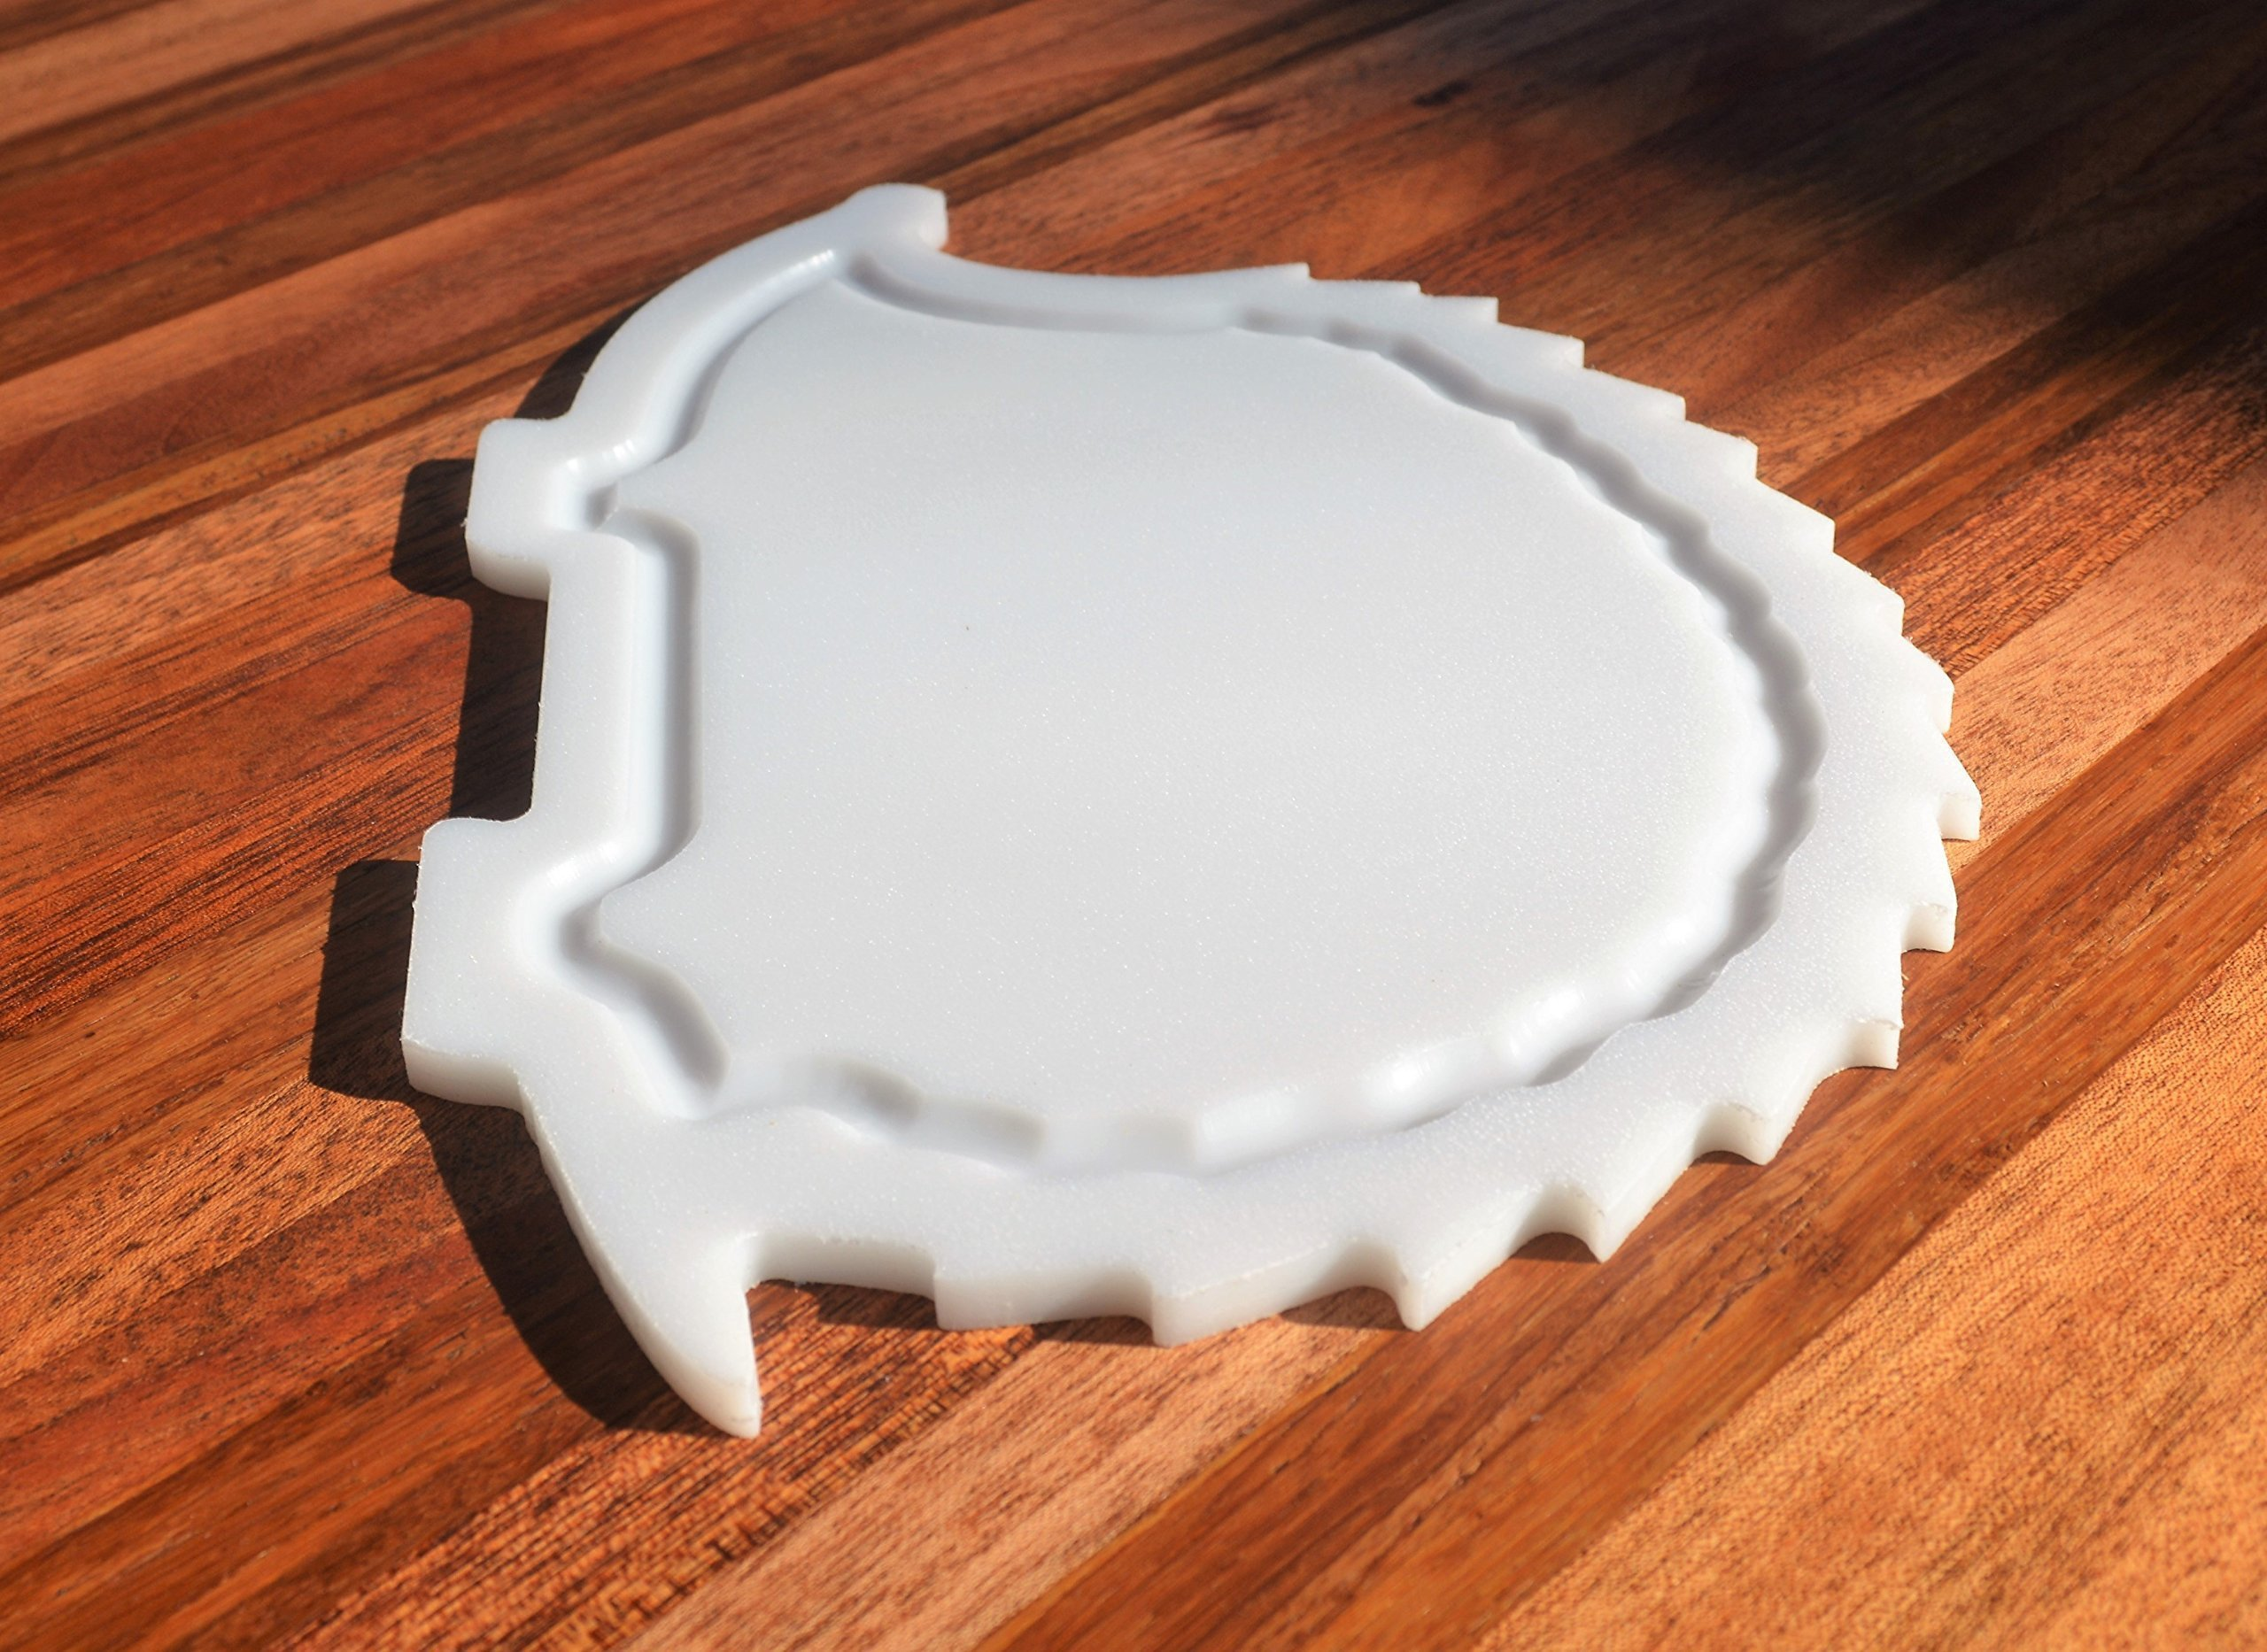 NEW HIGH QUALITY - Hedgehog Shaped White Plastic HDPE Cutting Board 11x7 Animal Lovers Dishwasher Safe FREE FAST SHIPPING! by With the Grain Woodworks (Image #3)